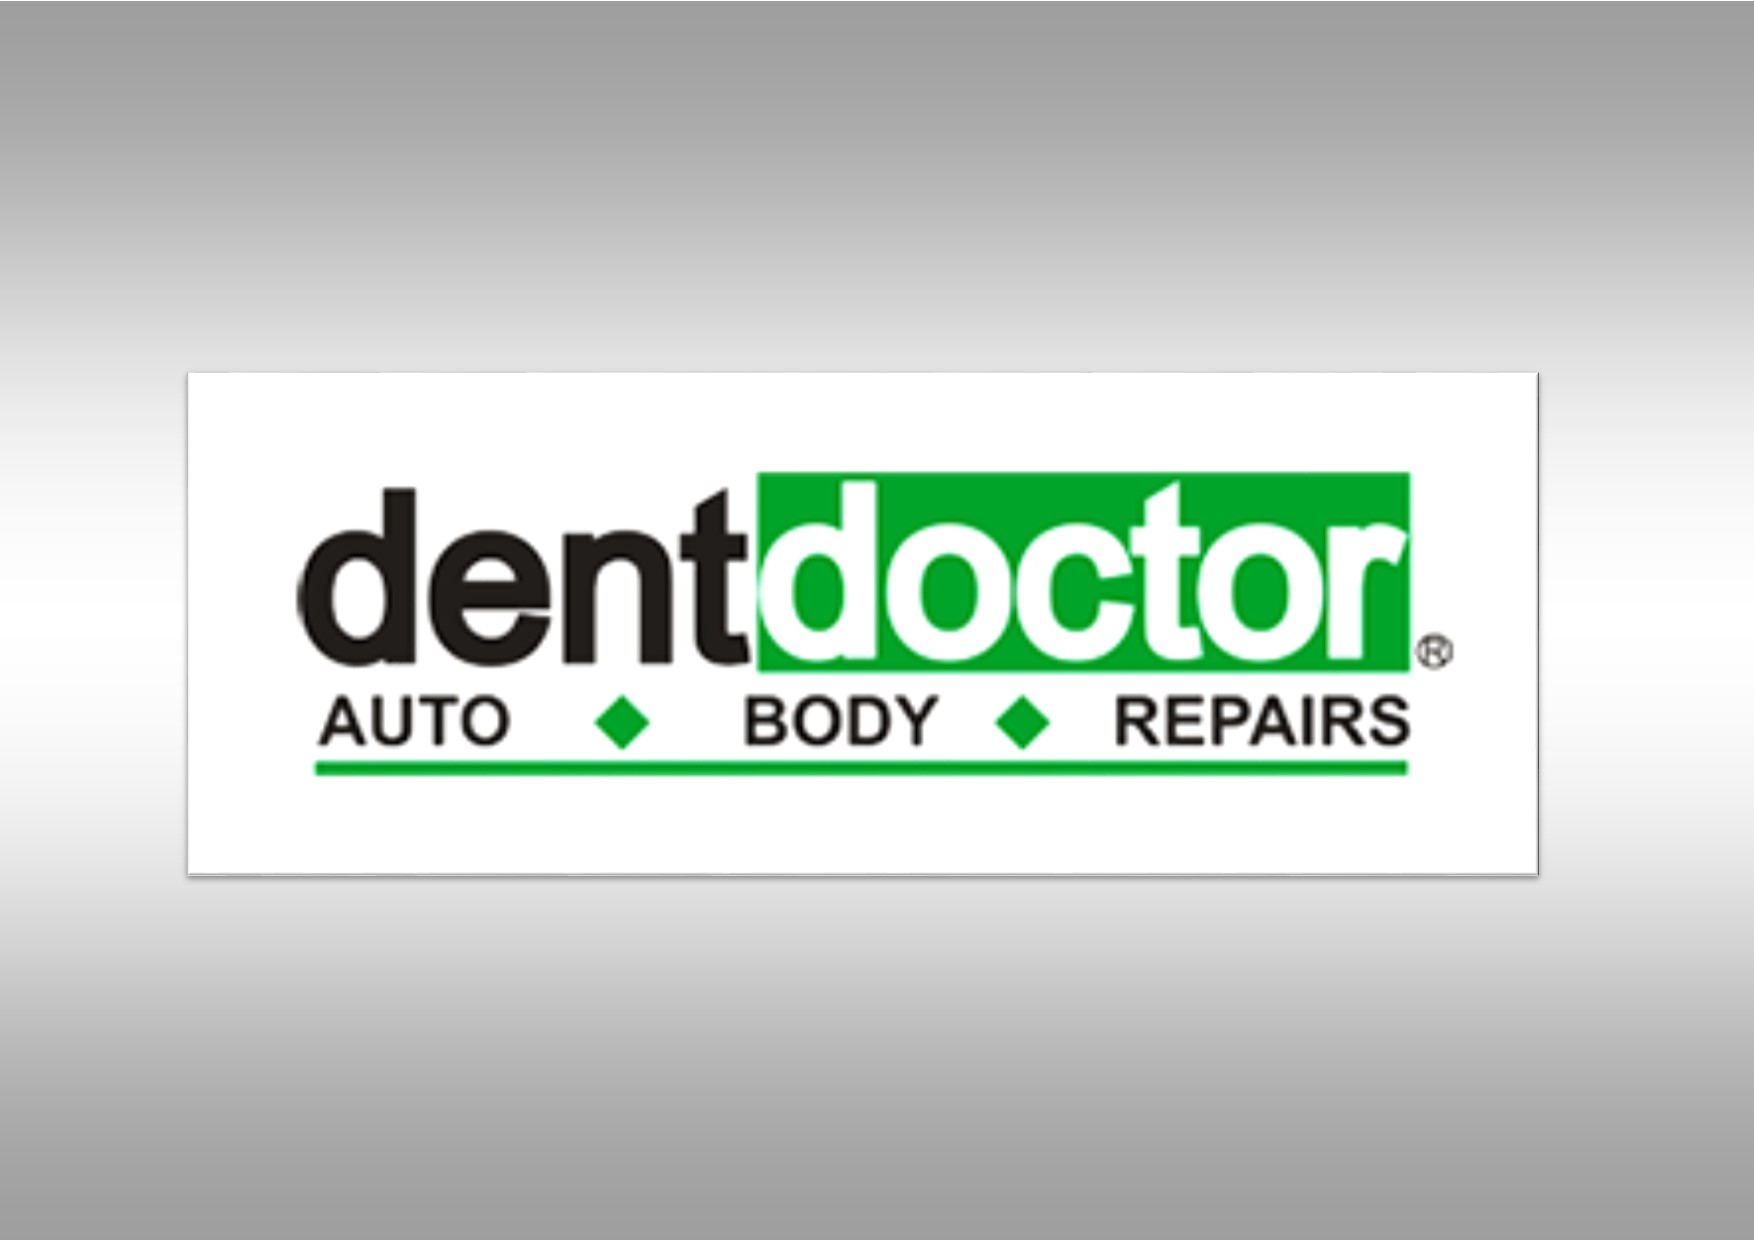 Dent Doctor Auto Body Repair Group